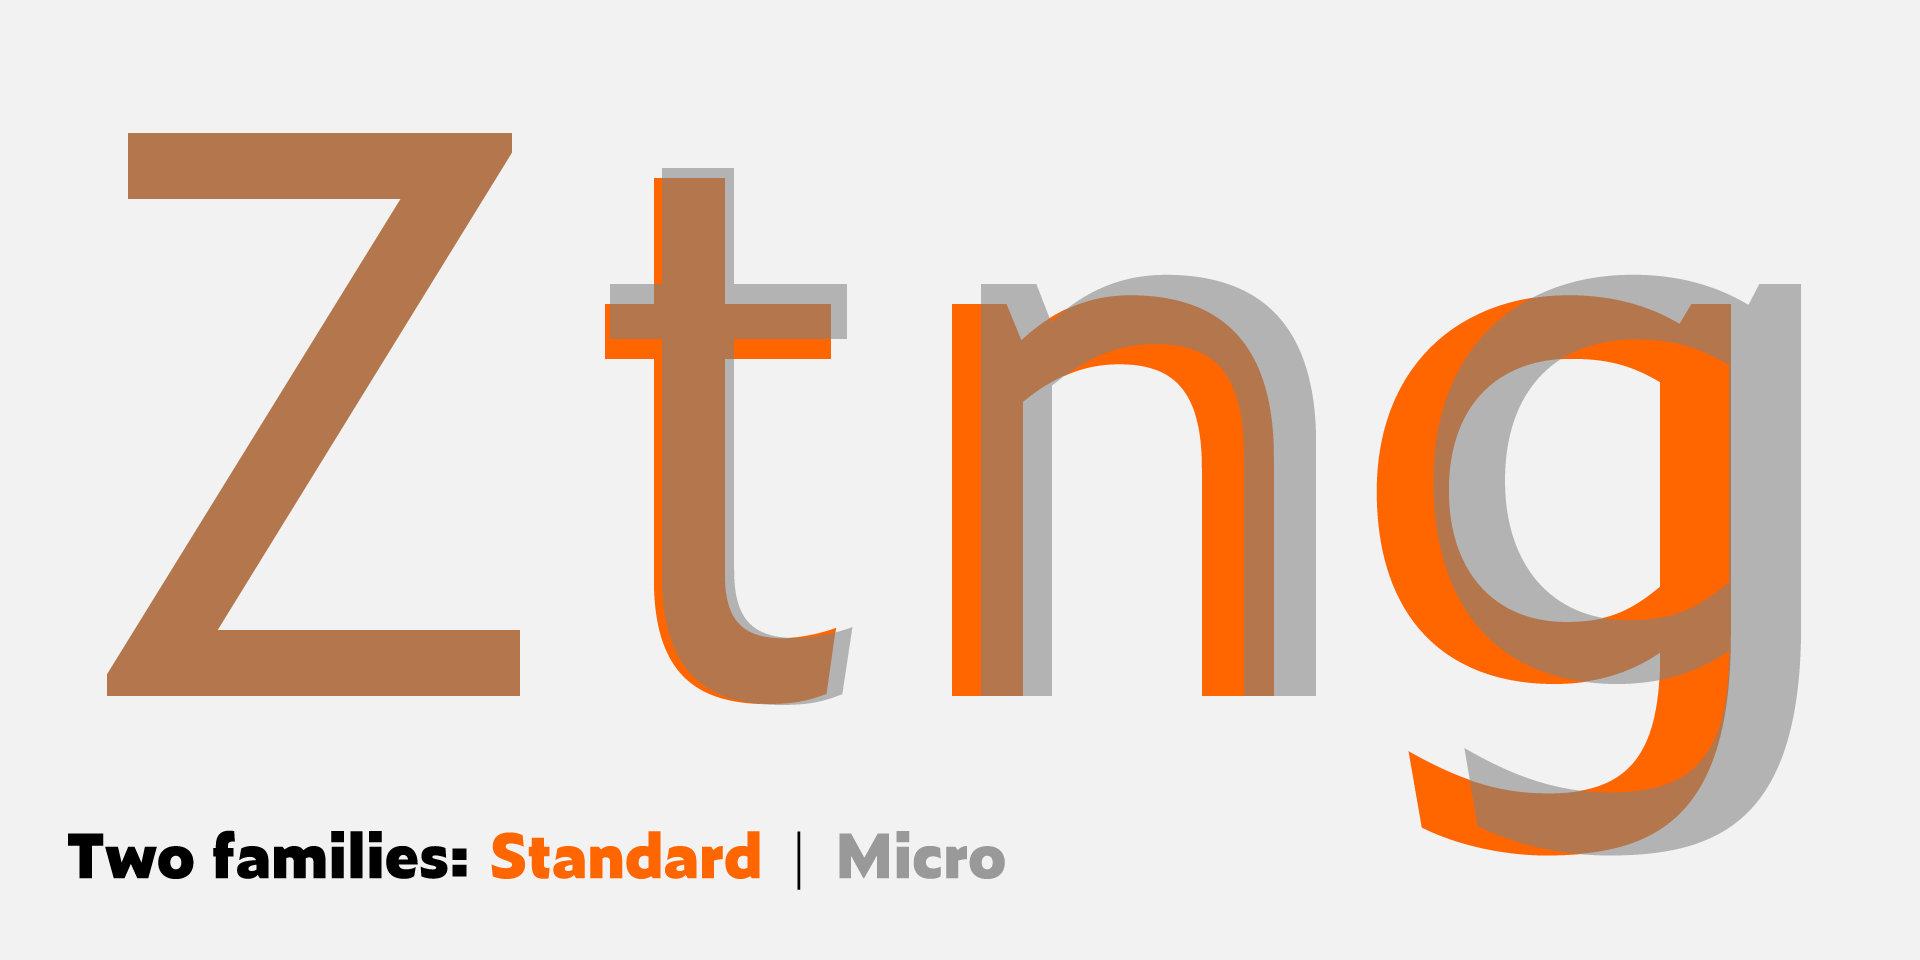 X-height is larger in Zeitung Micro styles